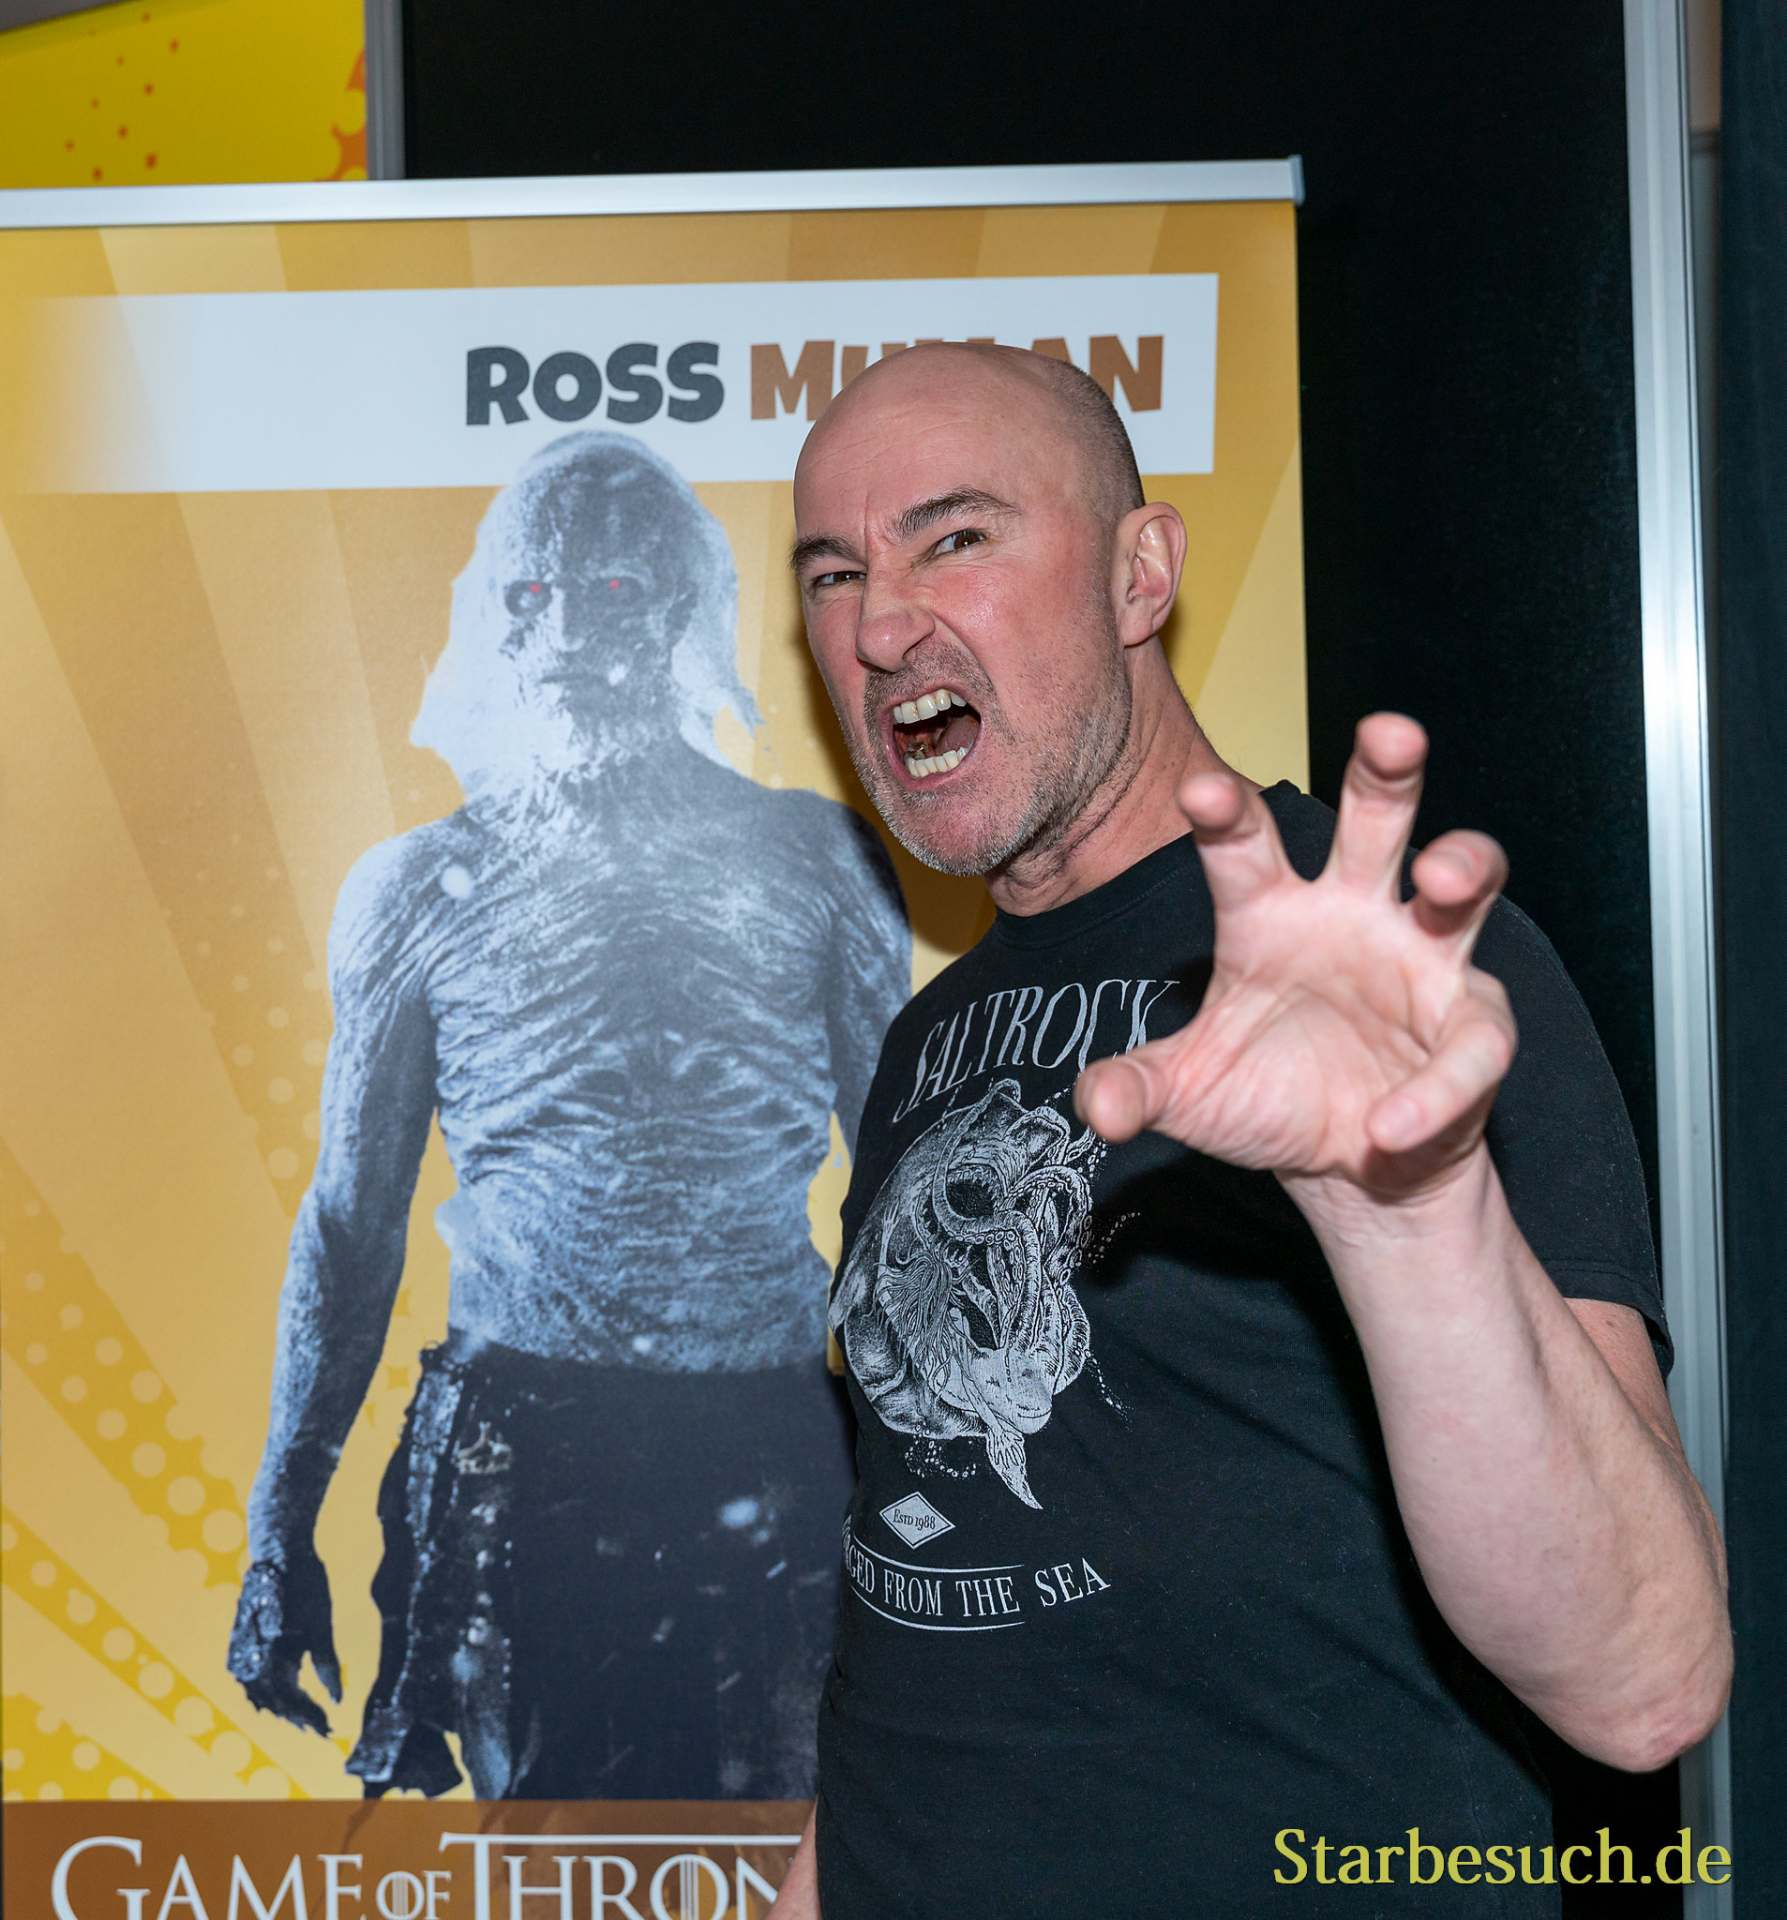 DORTMUND, GERMANY - December 8th 2019: Ross Mulan at German Comic Con Dortmund